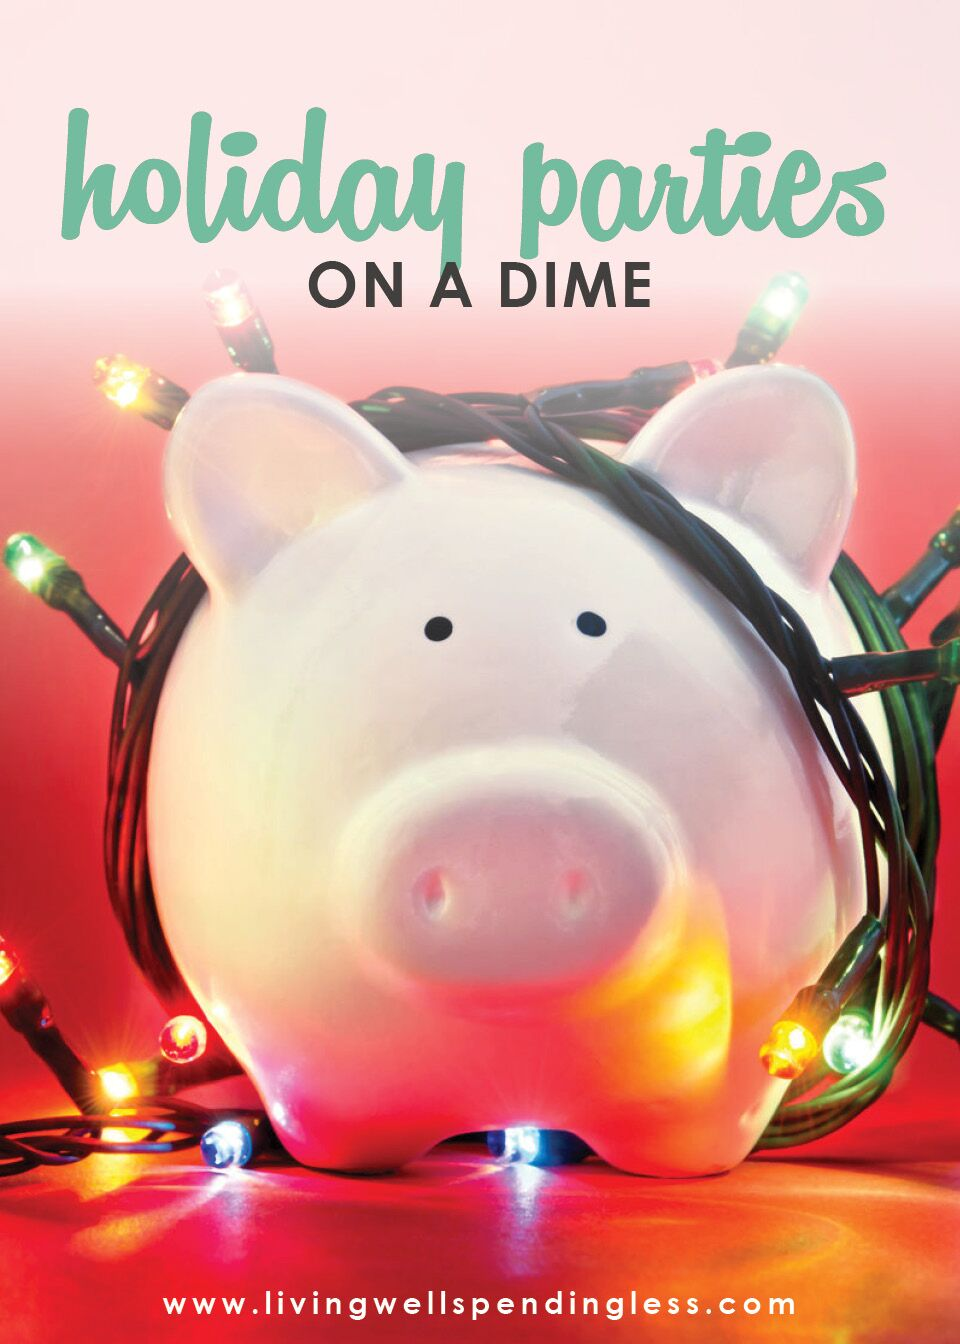 Ways to Save on Holiday Parties   Budgeting   Holiday Savings   Holidays & Special Occasions   Money Saving Tips   Party Planning